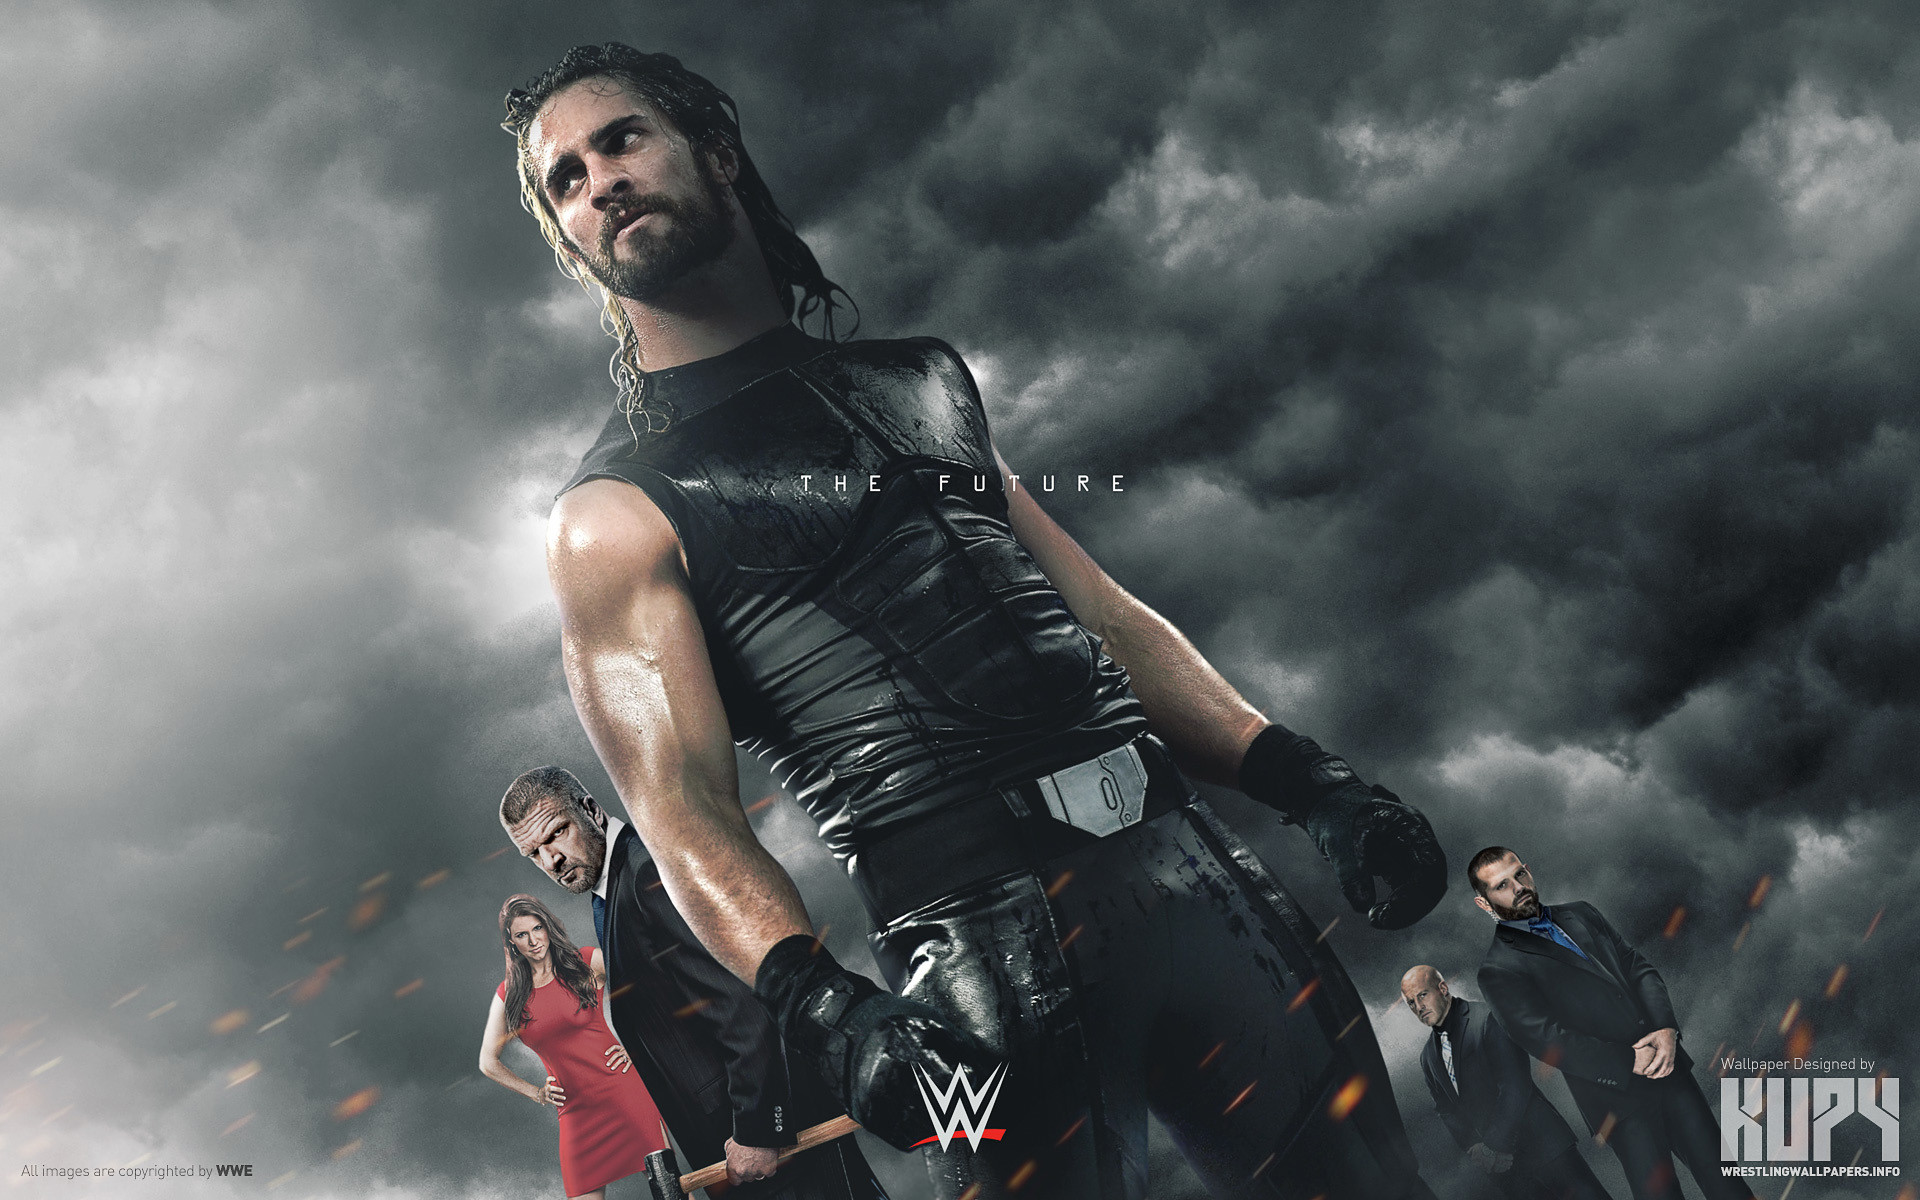 1920x1200 http://www.kupywrestlingwallpapers.info/wallpapers/2015/seth-rollins-2015- wallpaper-.jpg